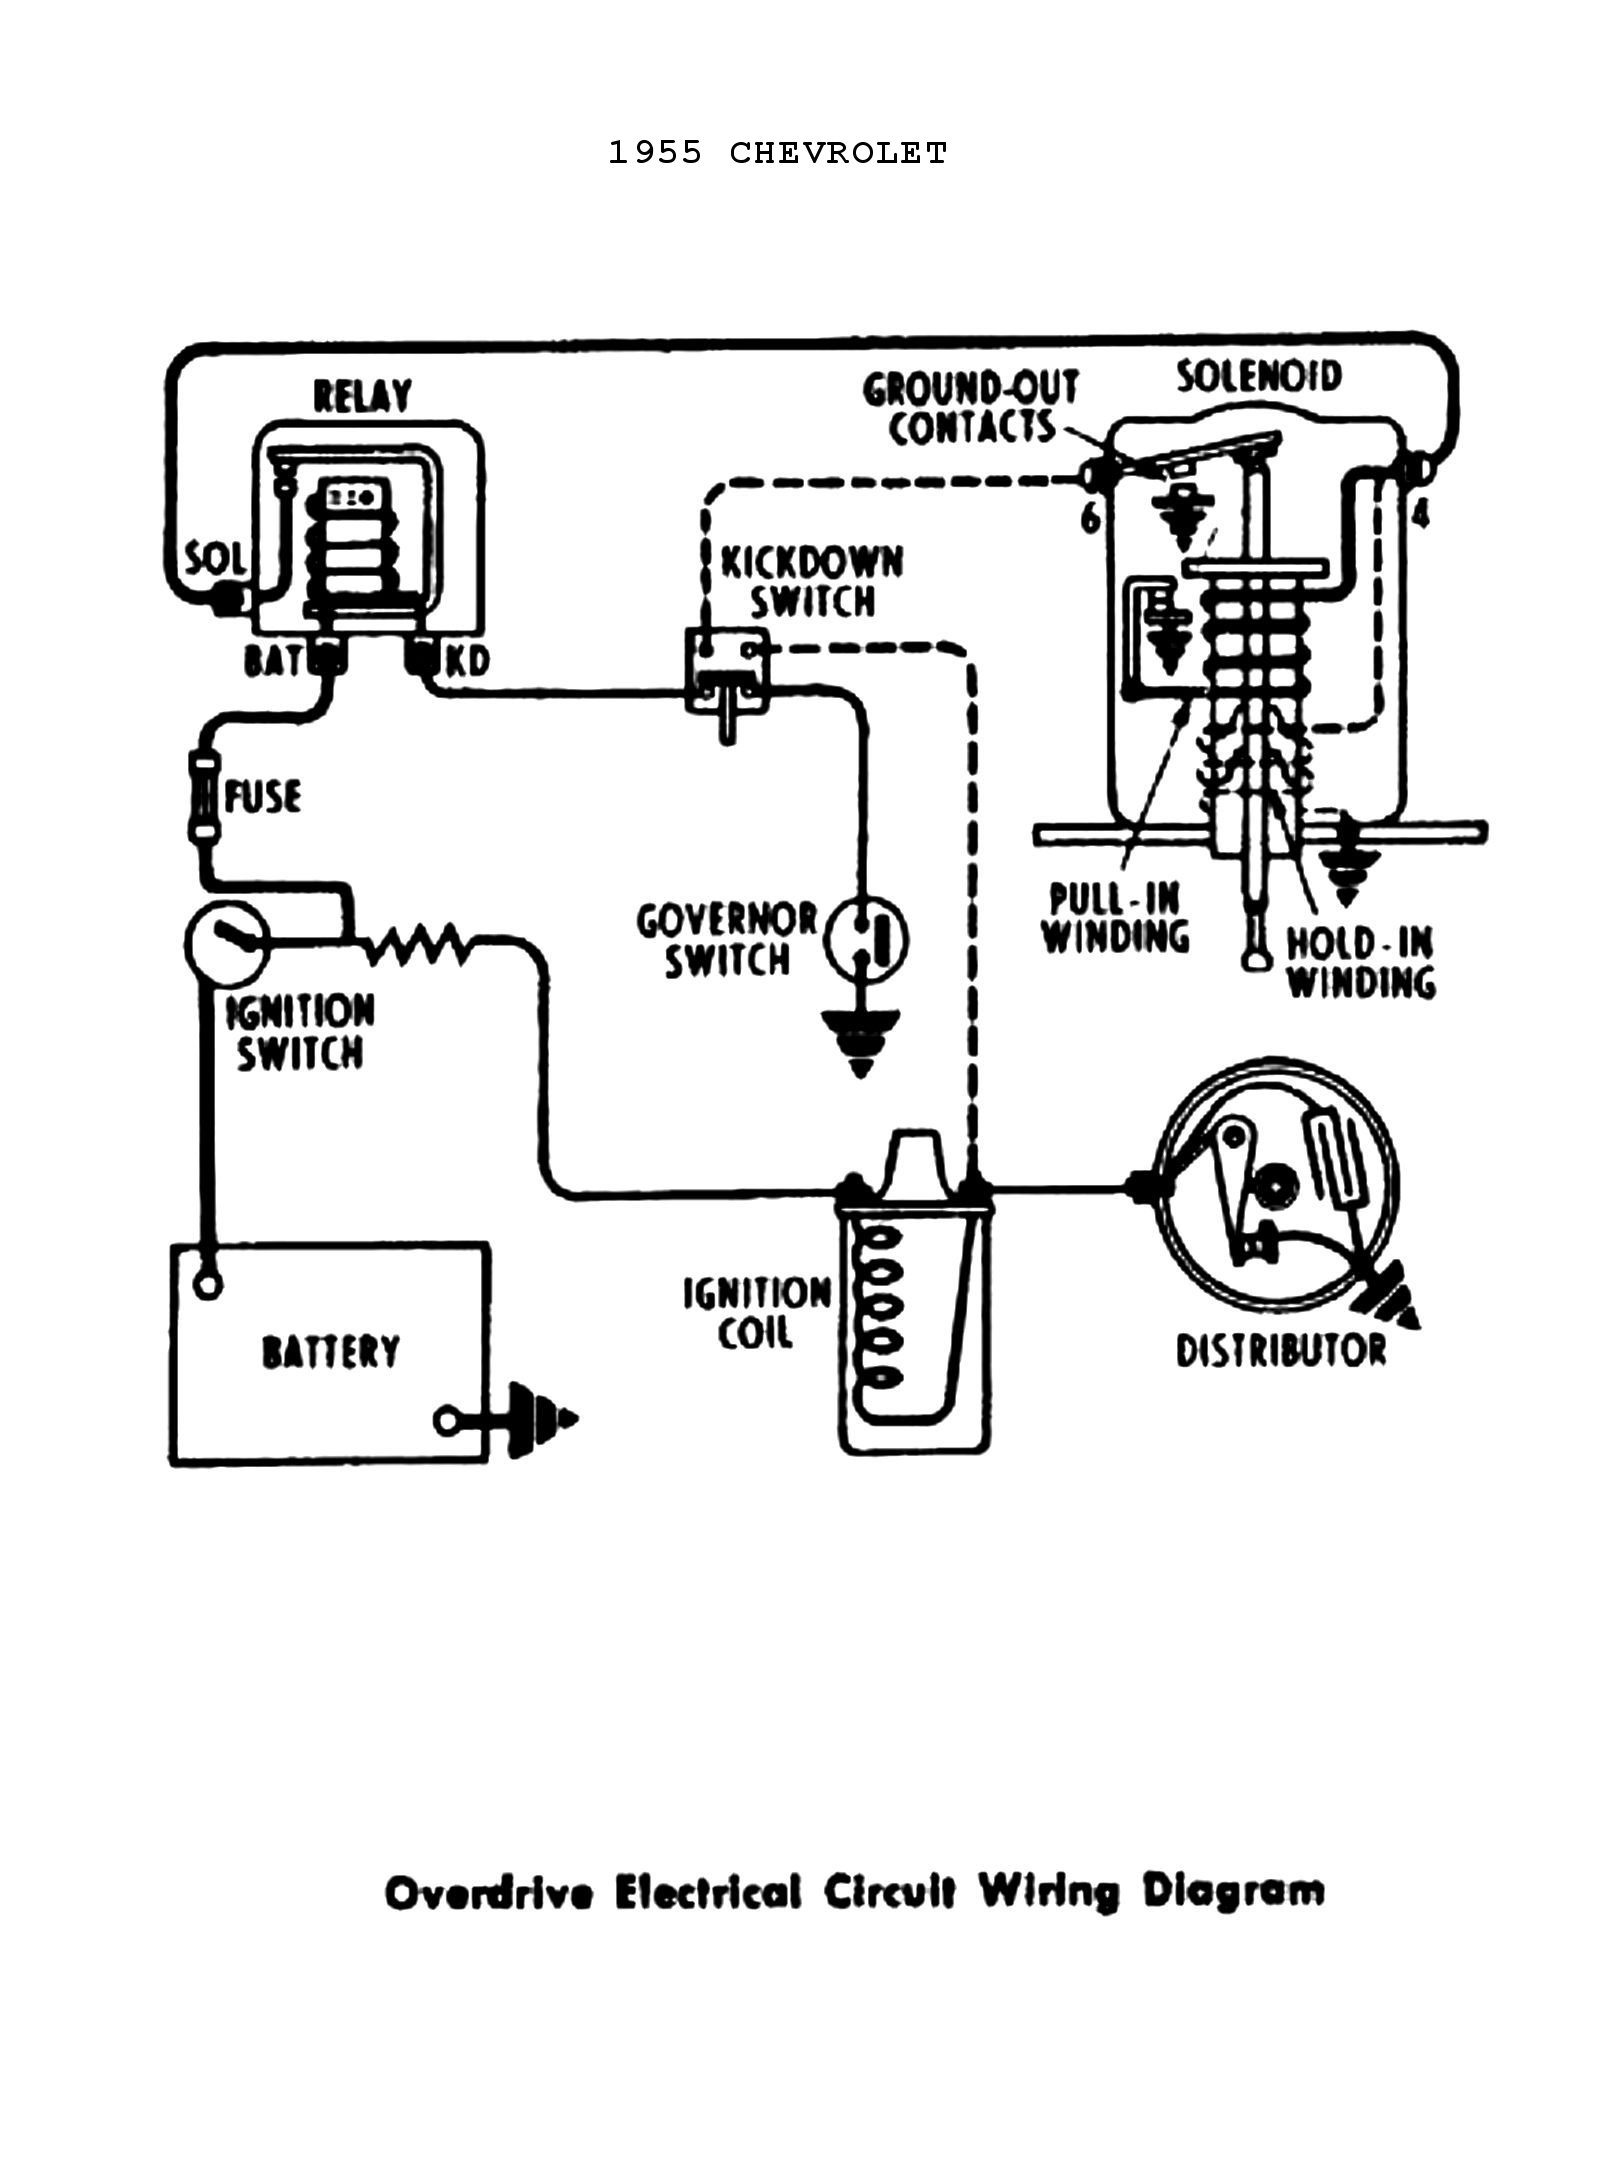 Wire Diagram For 1957 Chevy Convertible Wiring Library 1973 Pontiac Grandville Engine 1955 Power Windows Seats Overdrive Circuit